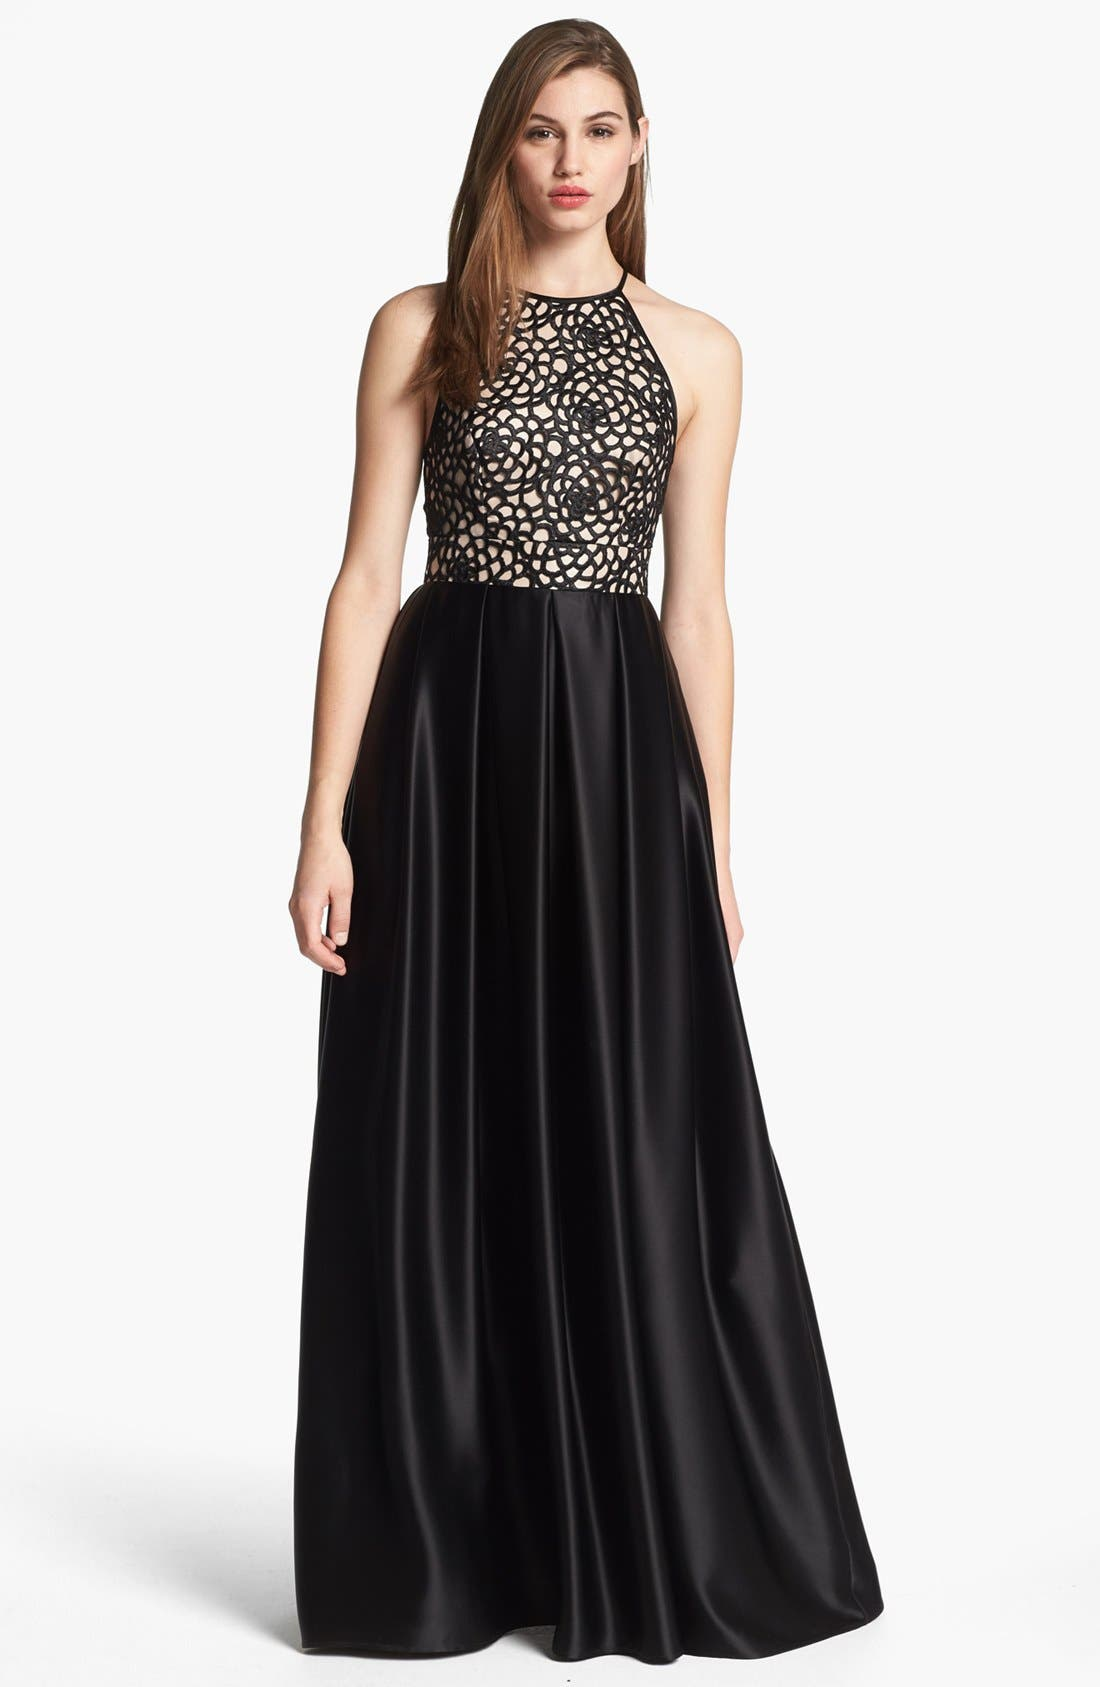 Alternate Image 1 Selected - ABS by Allen Schwartz Embroidered Bodice & Satin Skirt Gown